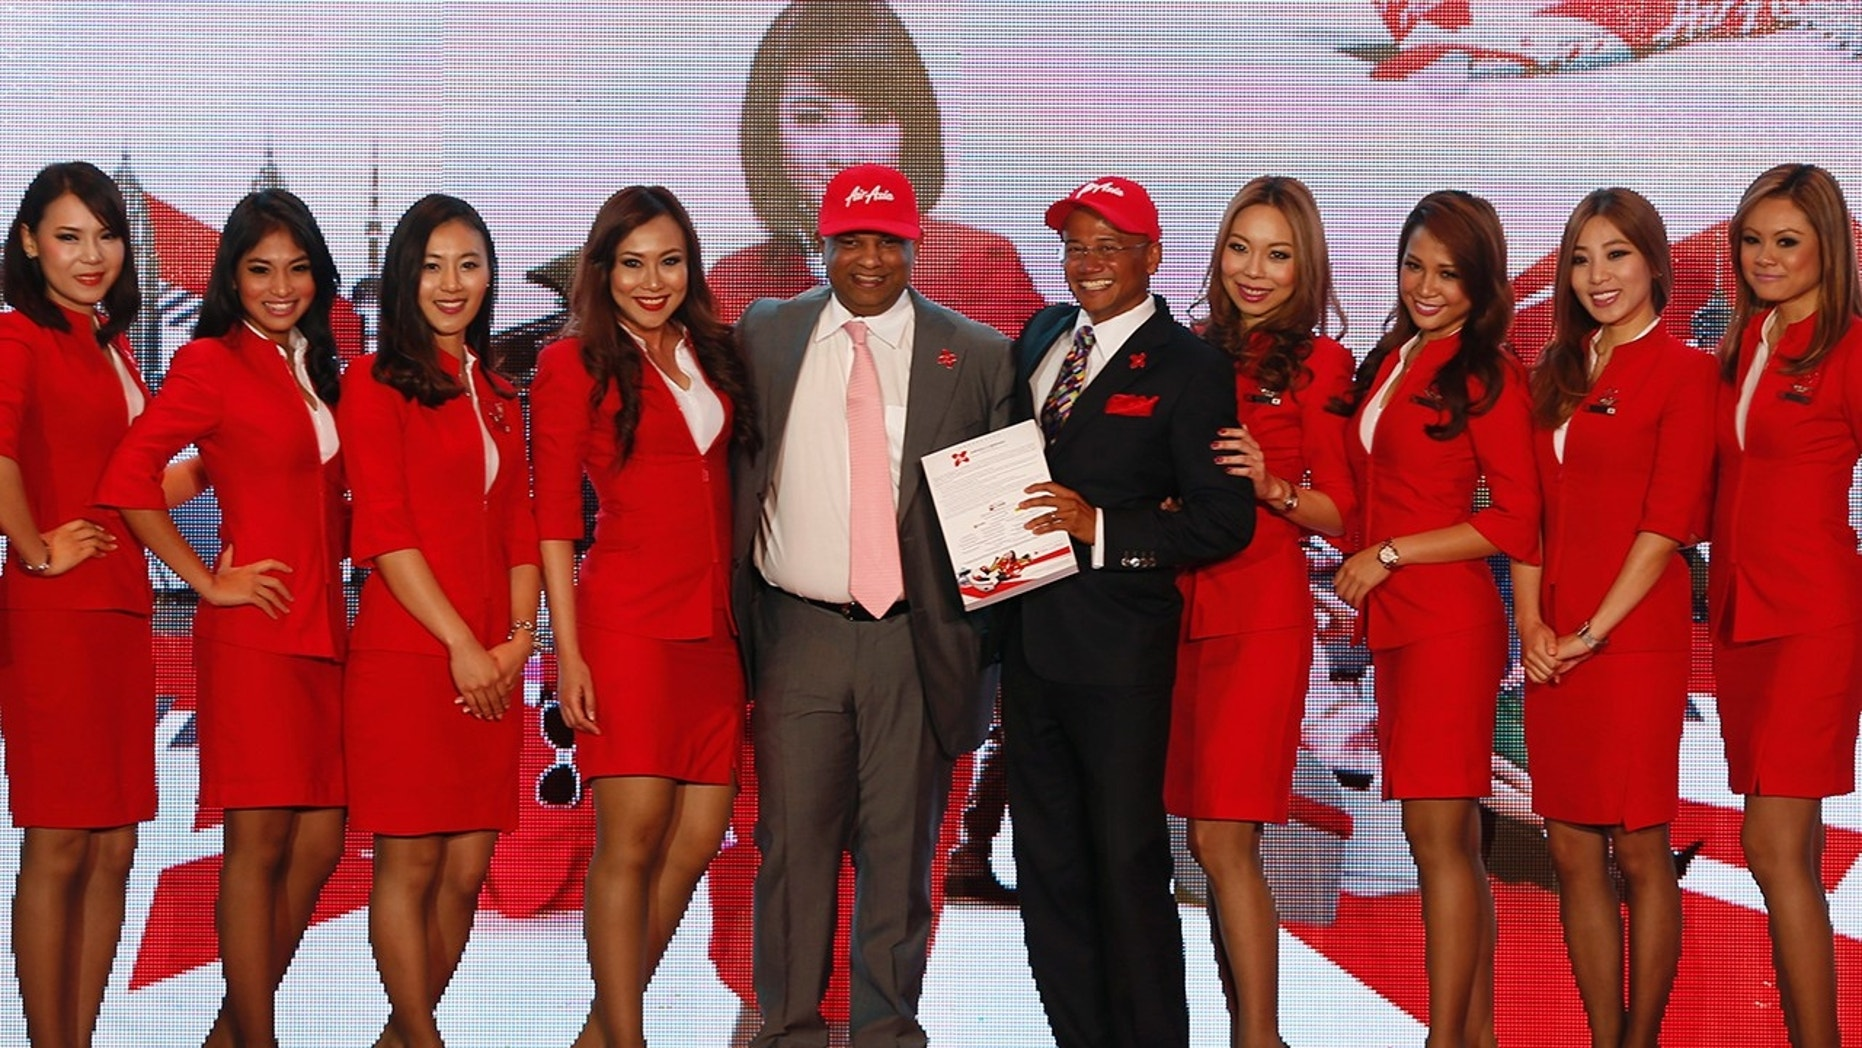 'Sexy' Flight Attendant Uniforms Cause Outrage in Malaysia